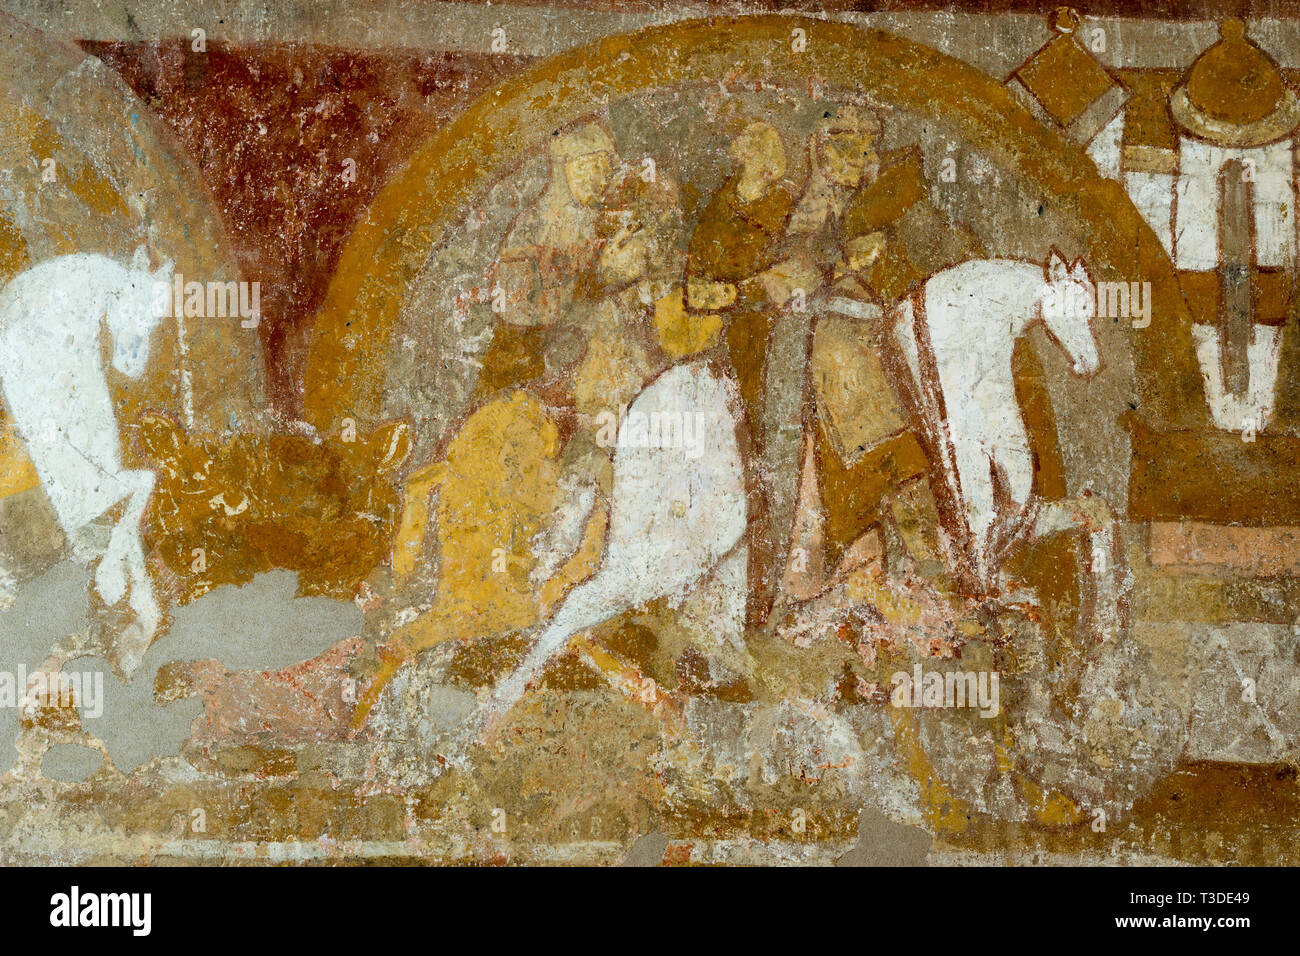 Two templars on a horse, riding towards the holy grail. The last templar is holding a church model? Medieval mural in Skibet church, October 27, 2015 - Stock Image